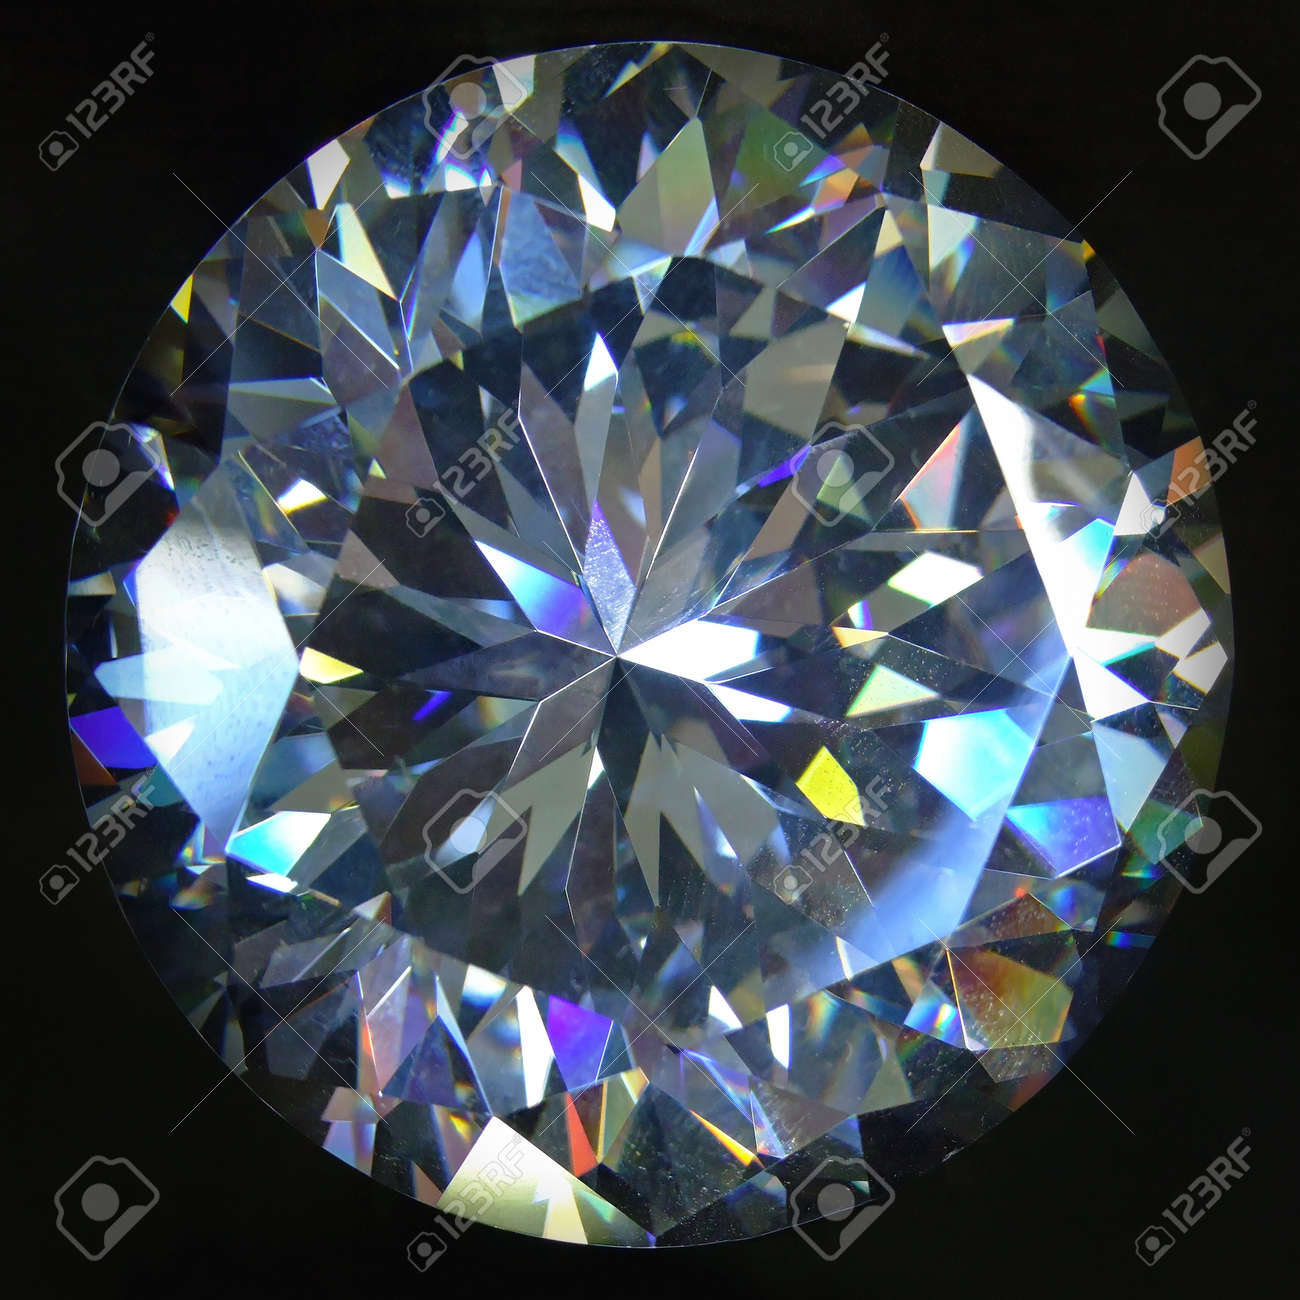 million in eighty artificial sapphires world revenue the weighing annual forum seven dollars at vendor on made sapphire s largest became of posts company kg